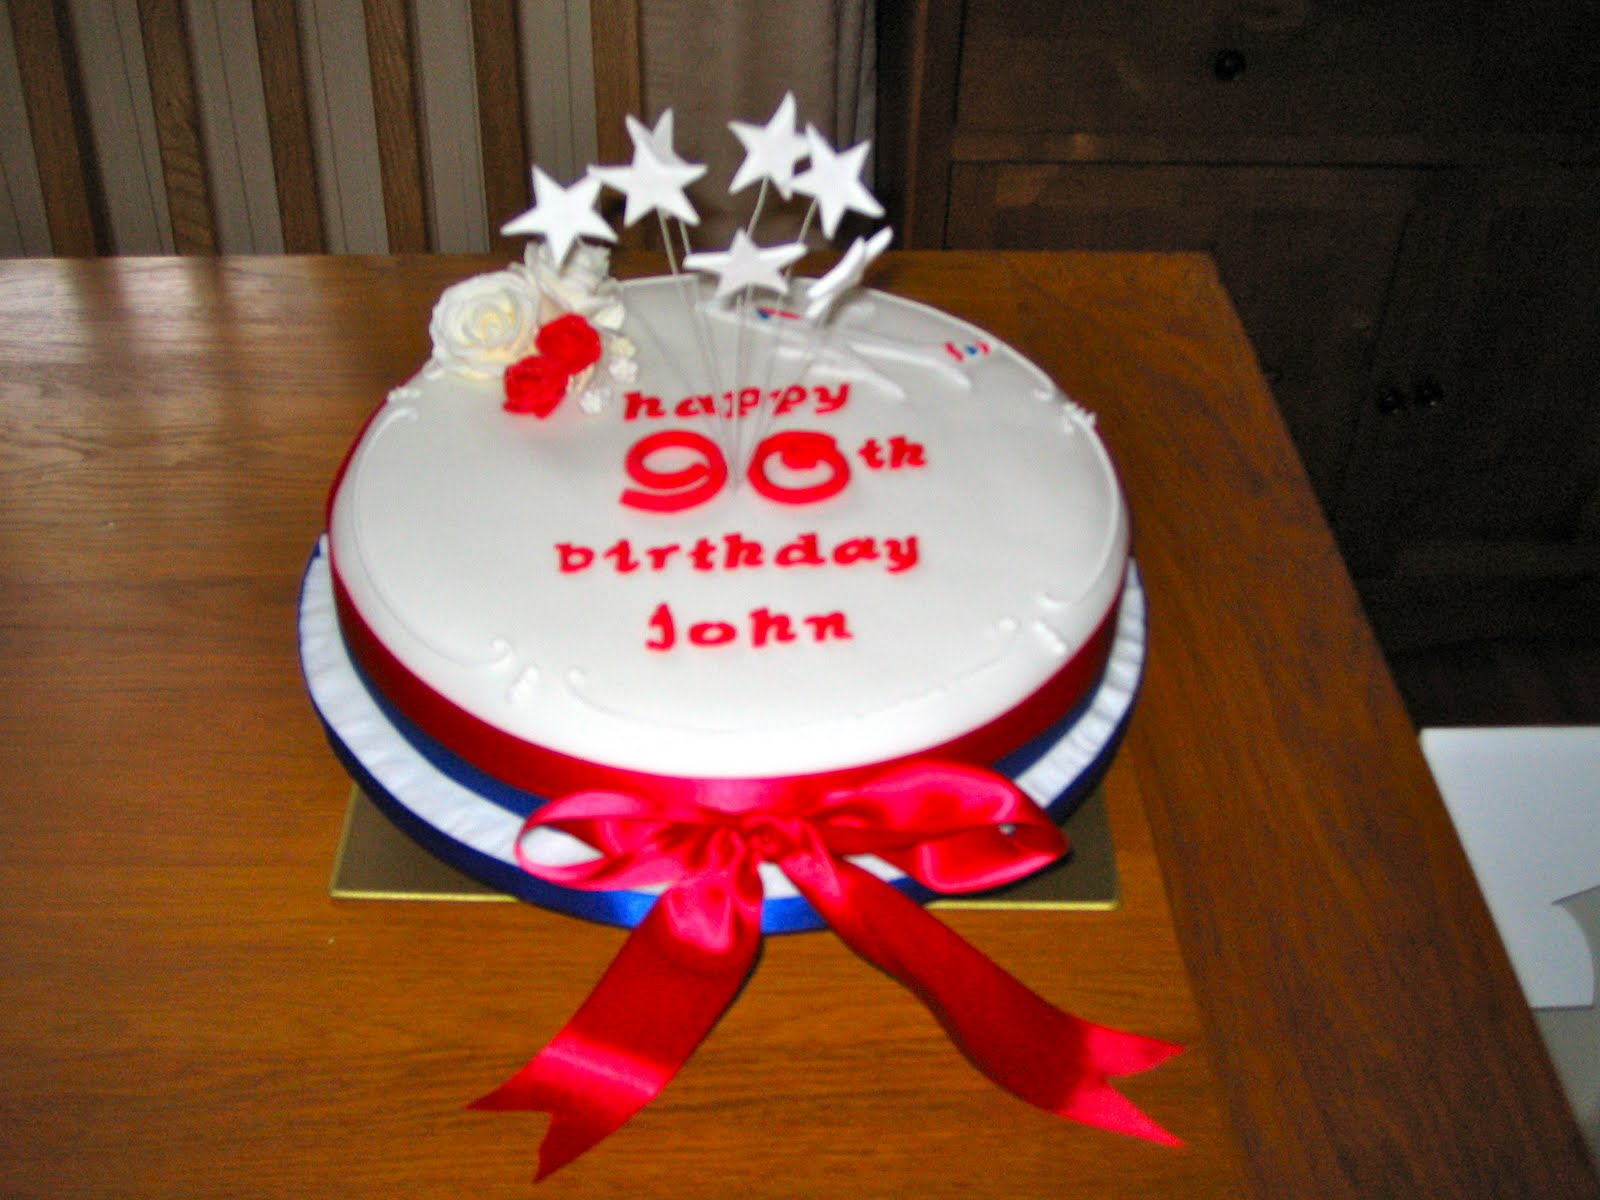 Birthday Cake For John : Betty Bakes: 90th Birthday Cake for John